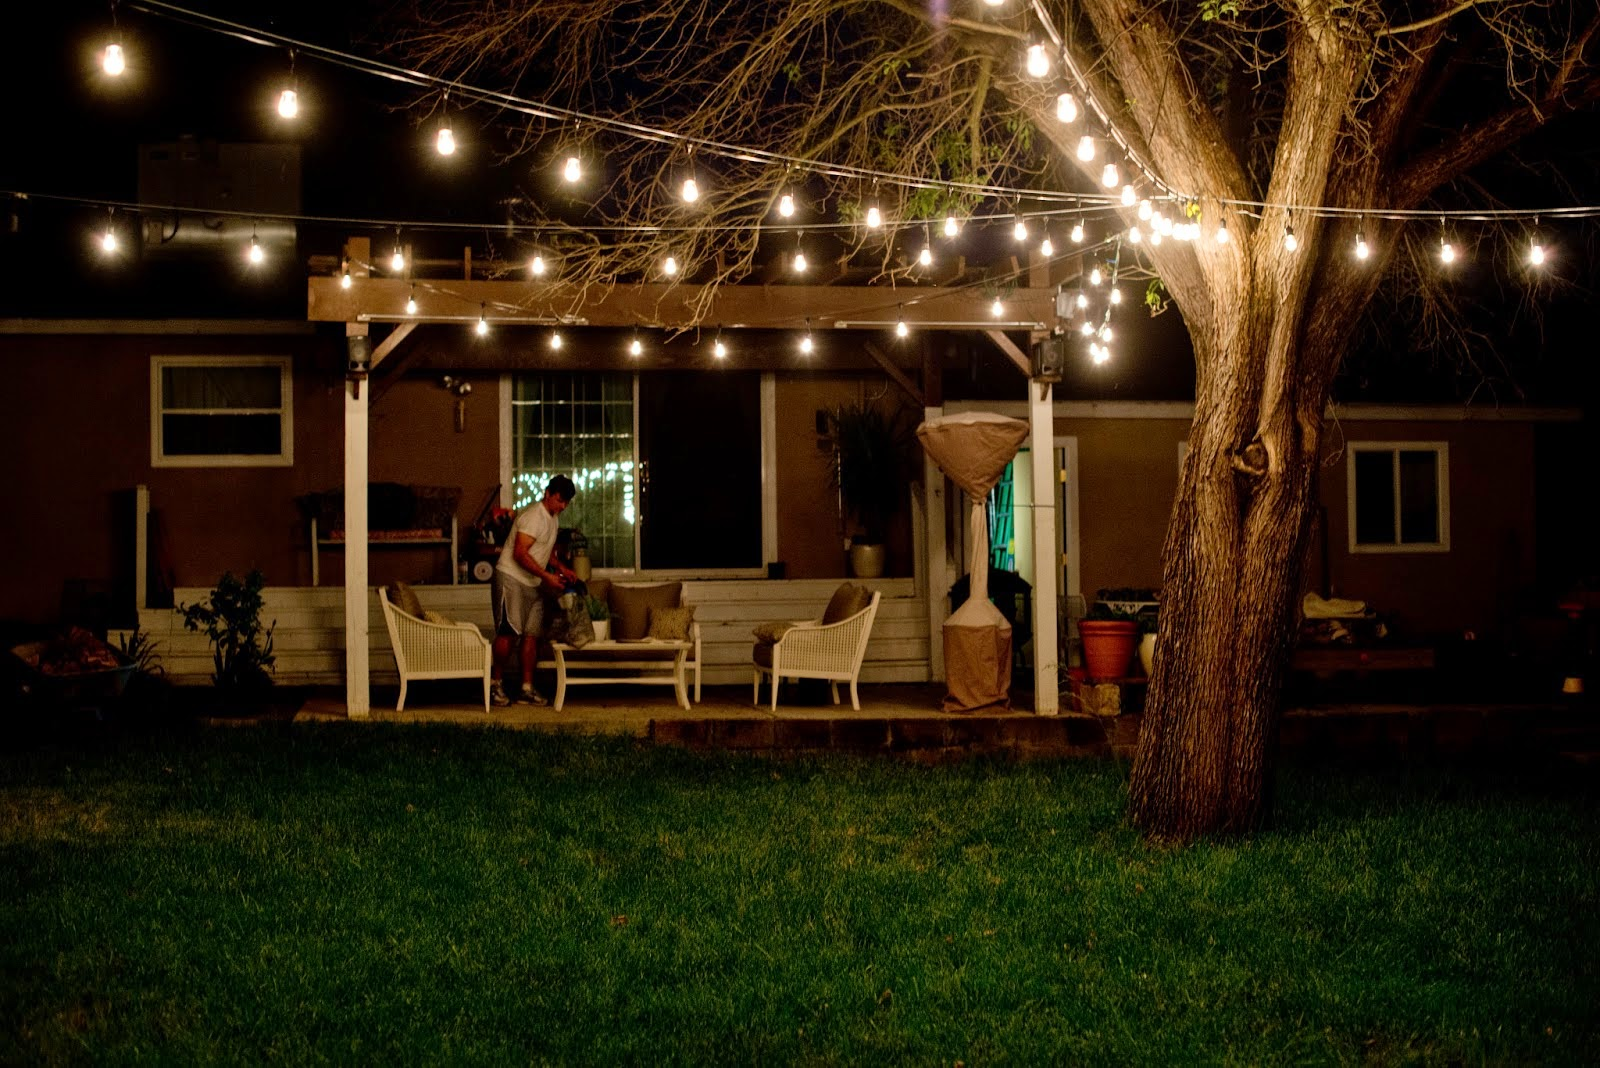 Lightshare: Light Up The Outdoor Patio Or Porch With